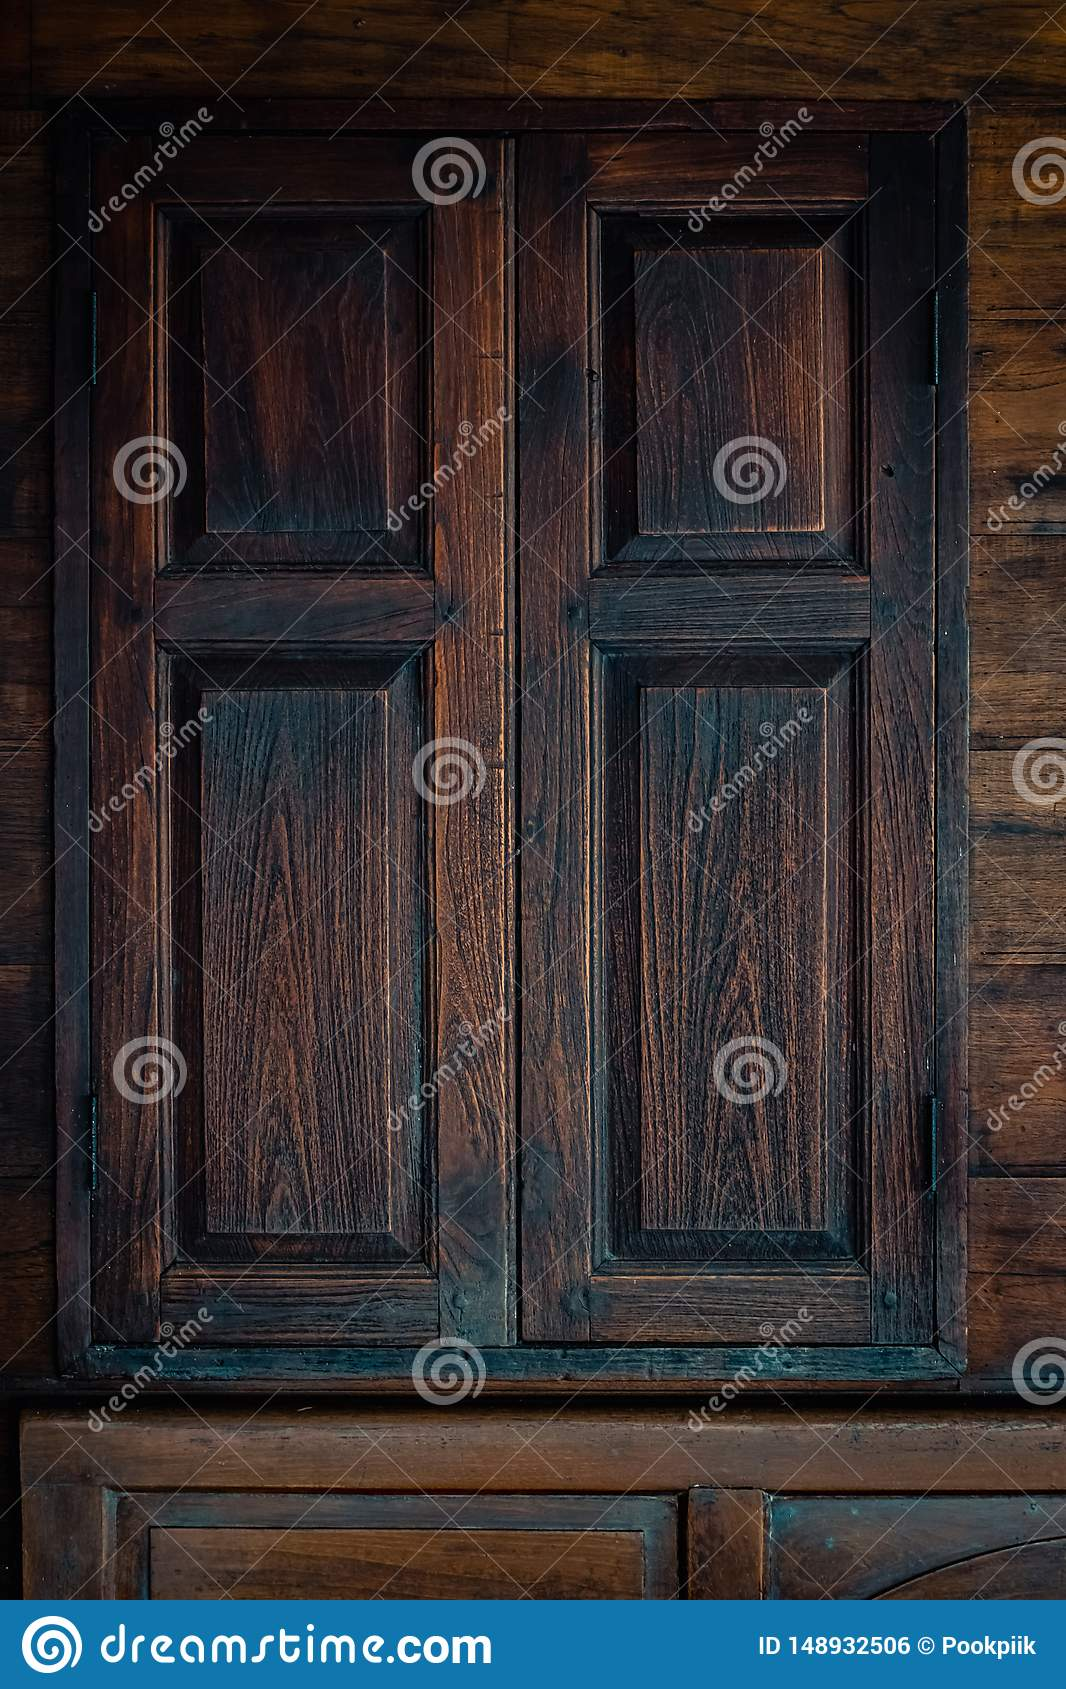 Old Grunge Wood Simple Window Wooden Surface Stock Photo Image Of Gate Design 148932506